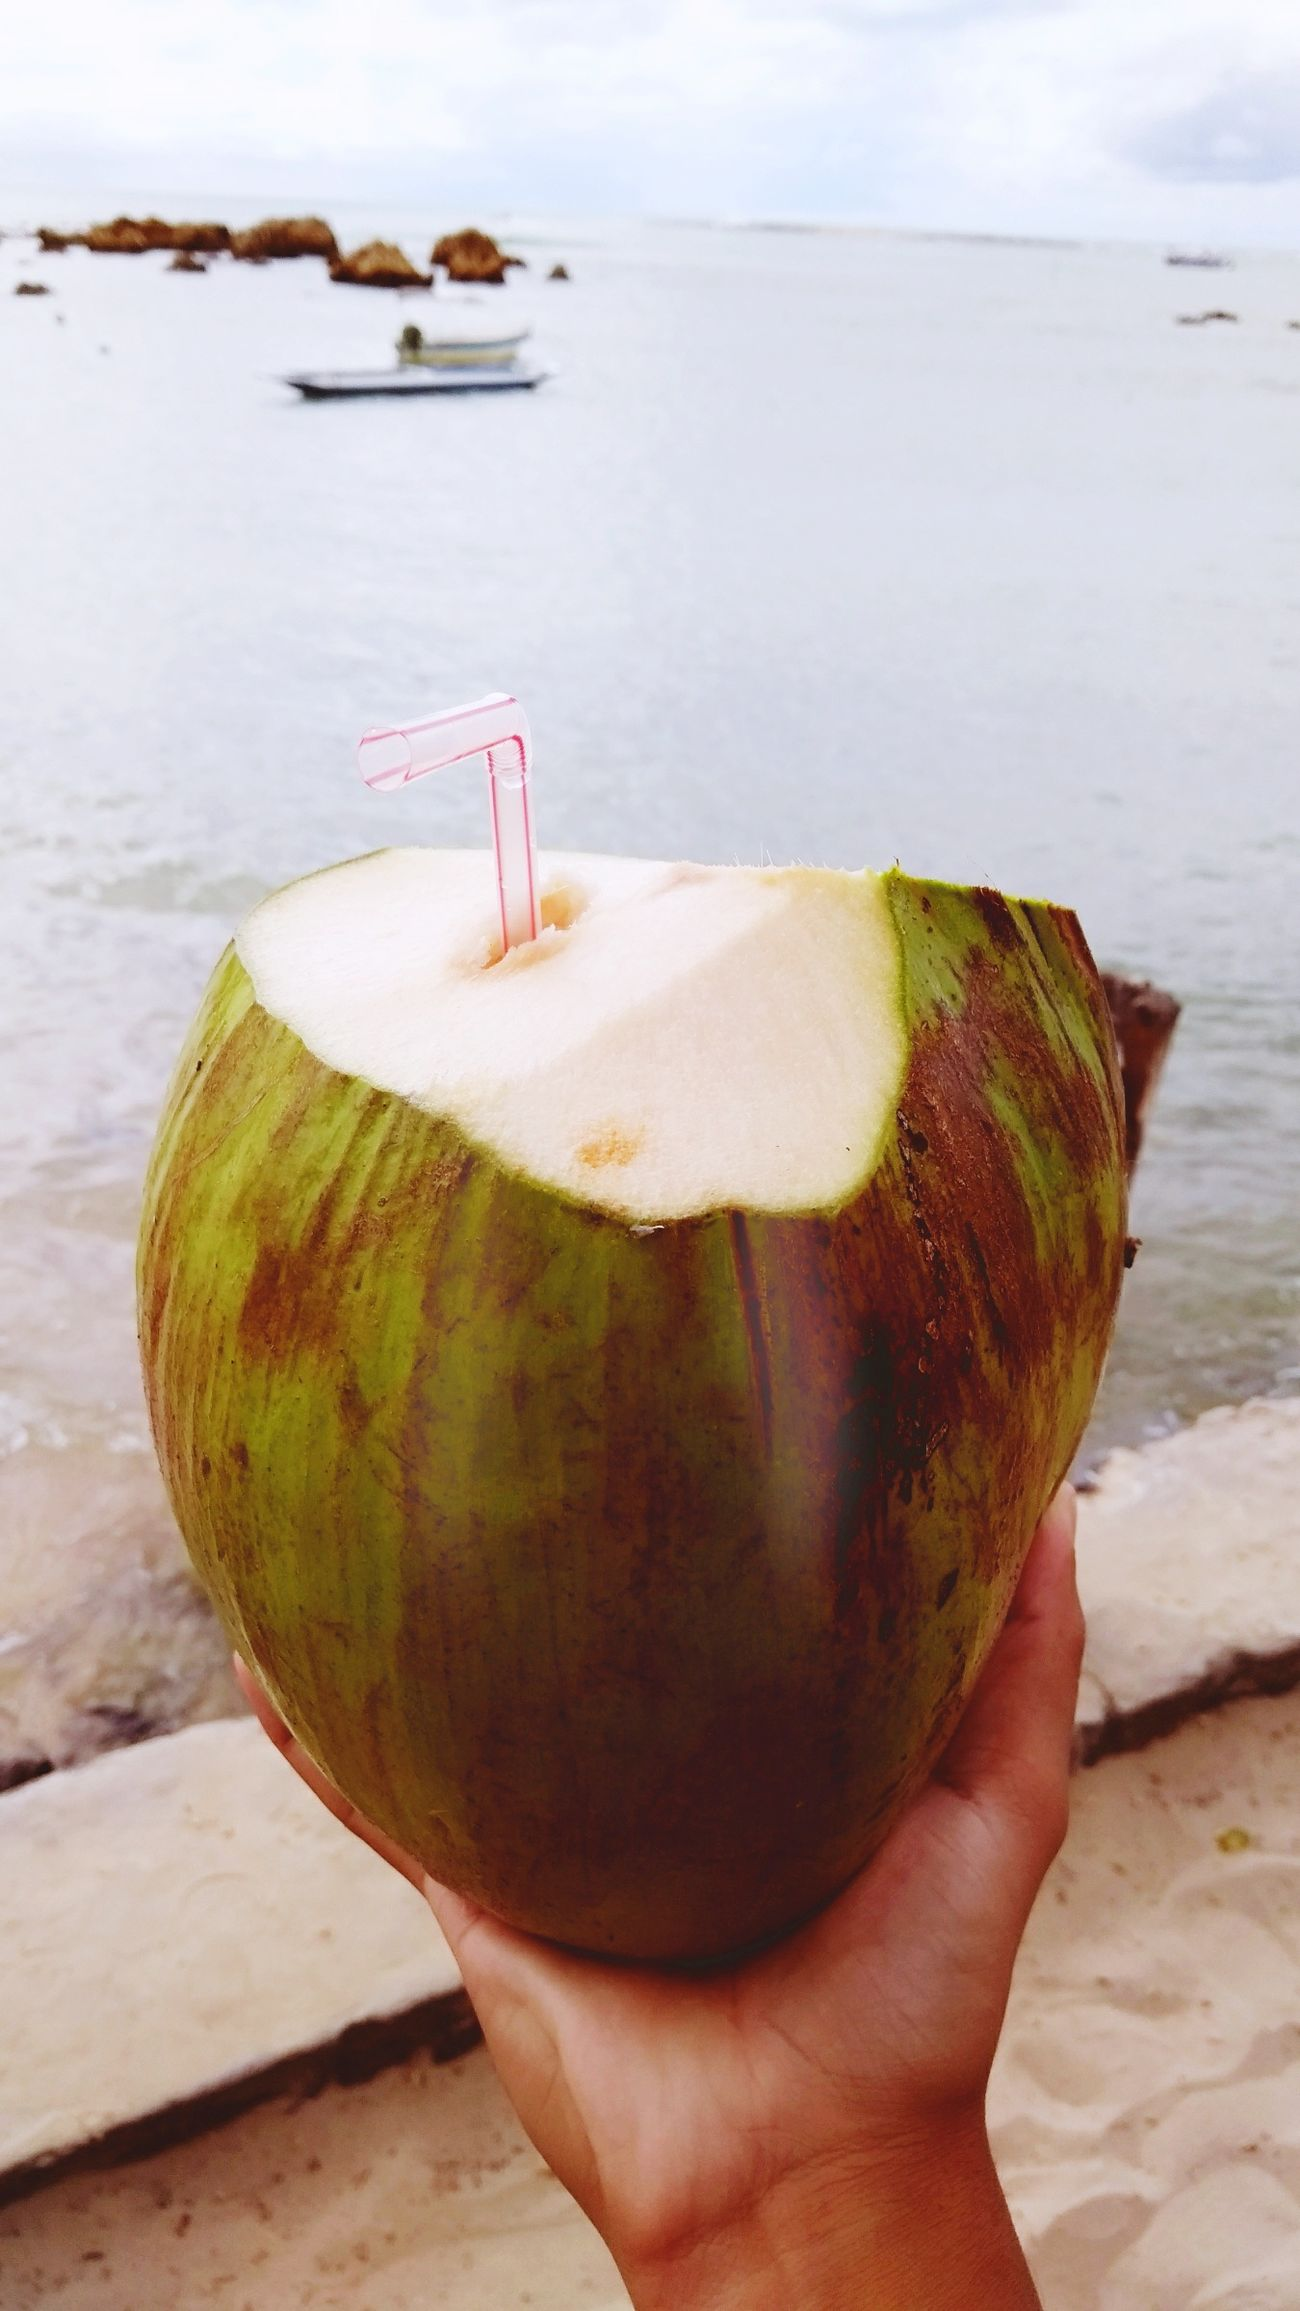 Fruit Food And Drink Coconut Day Nature Sky Freshness Beach Water